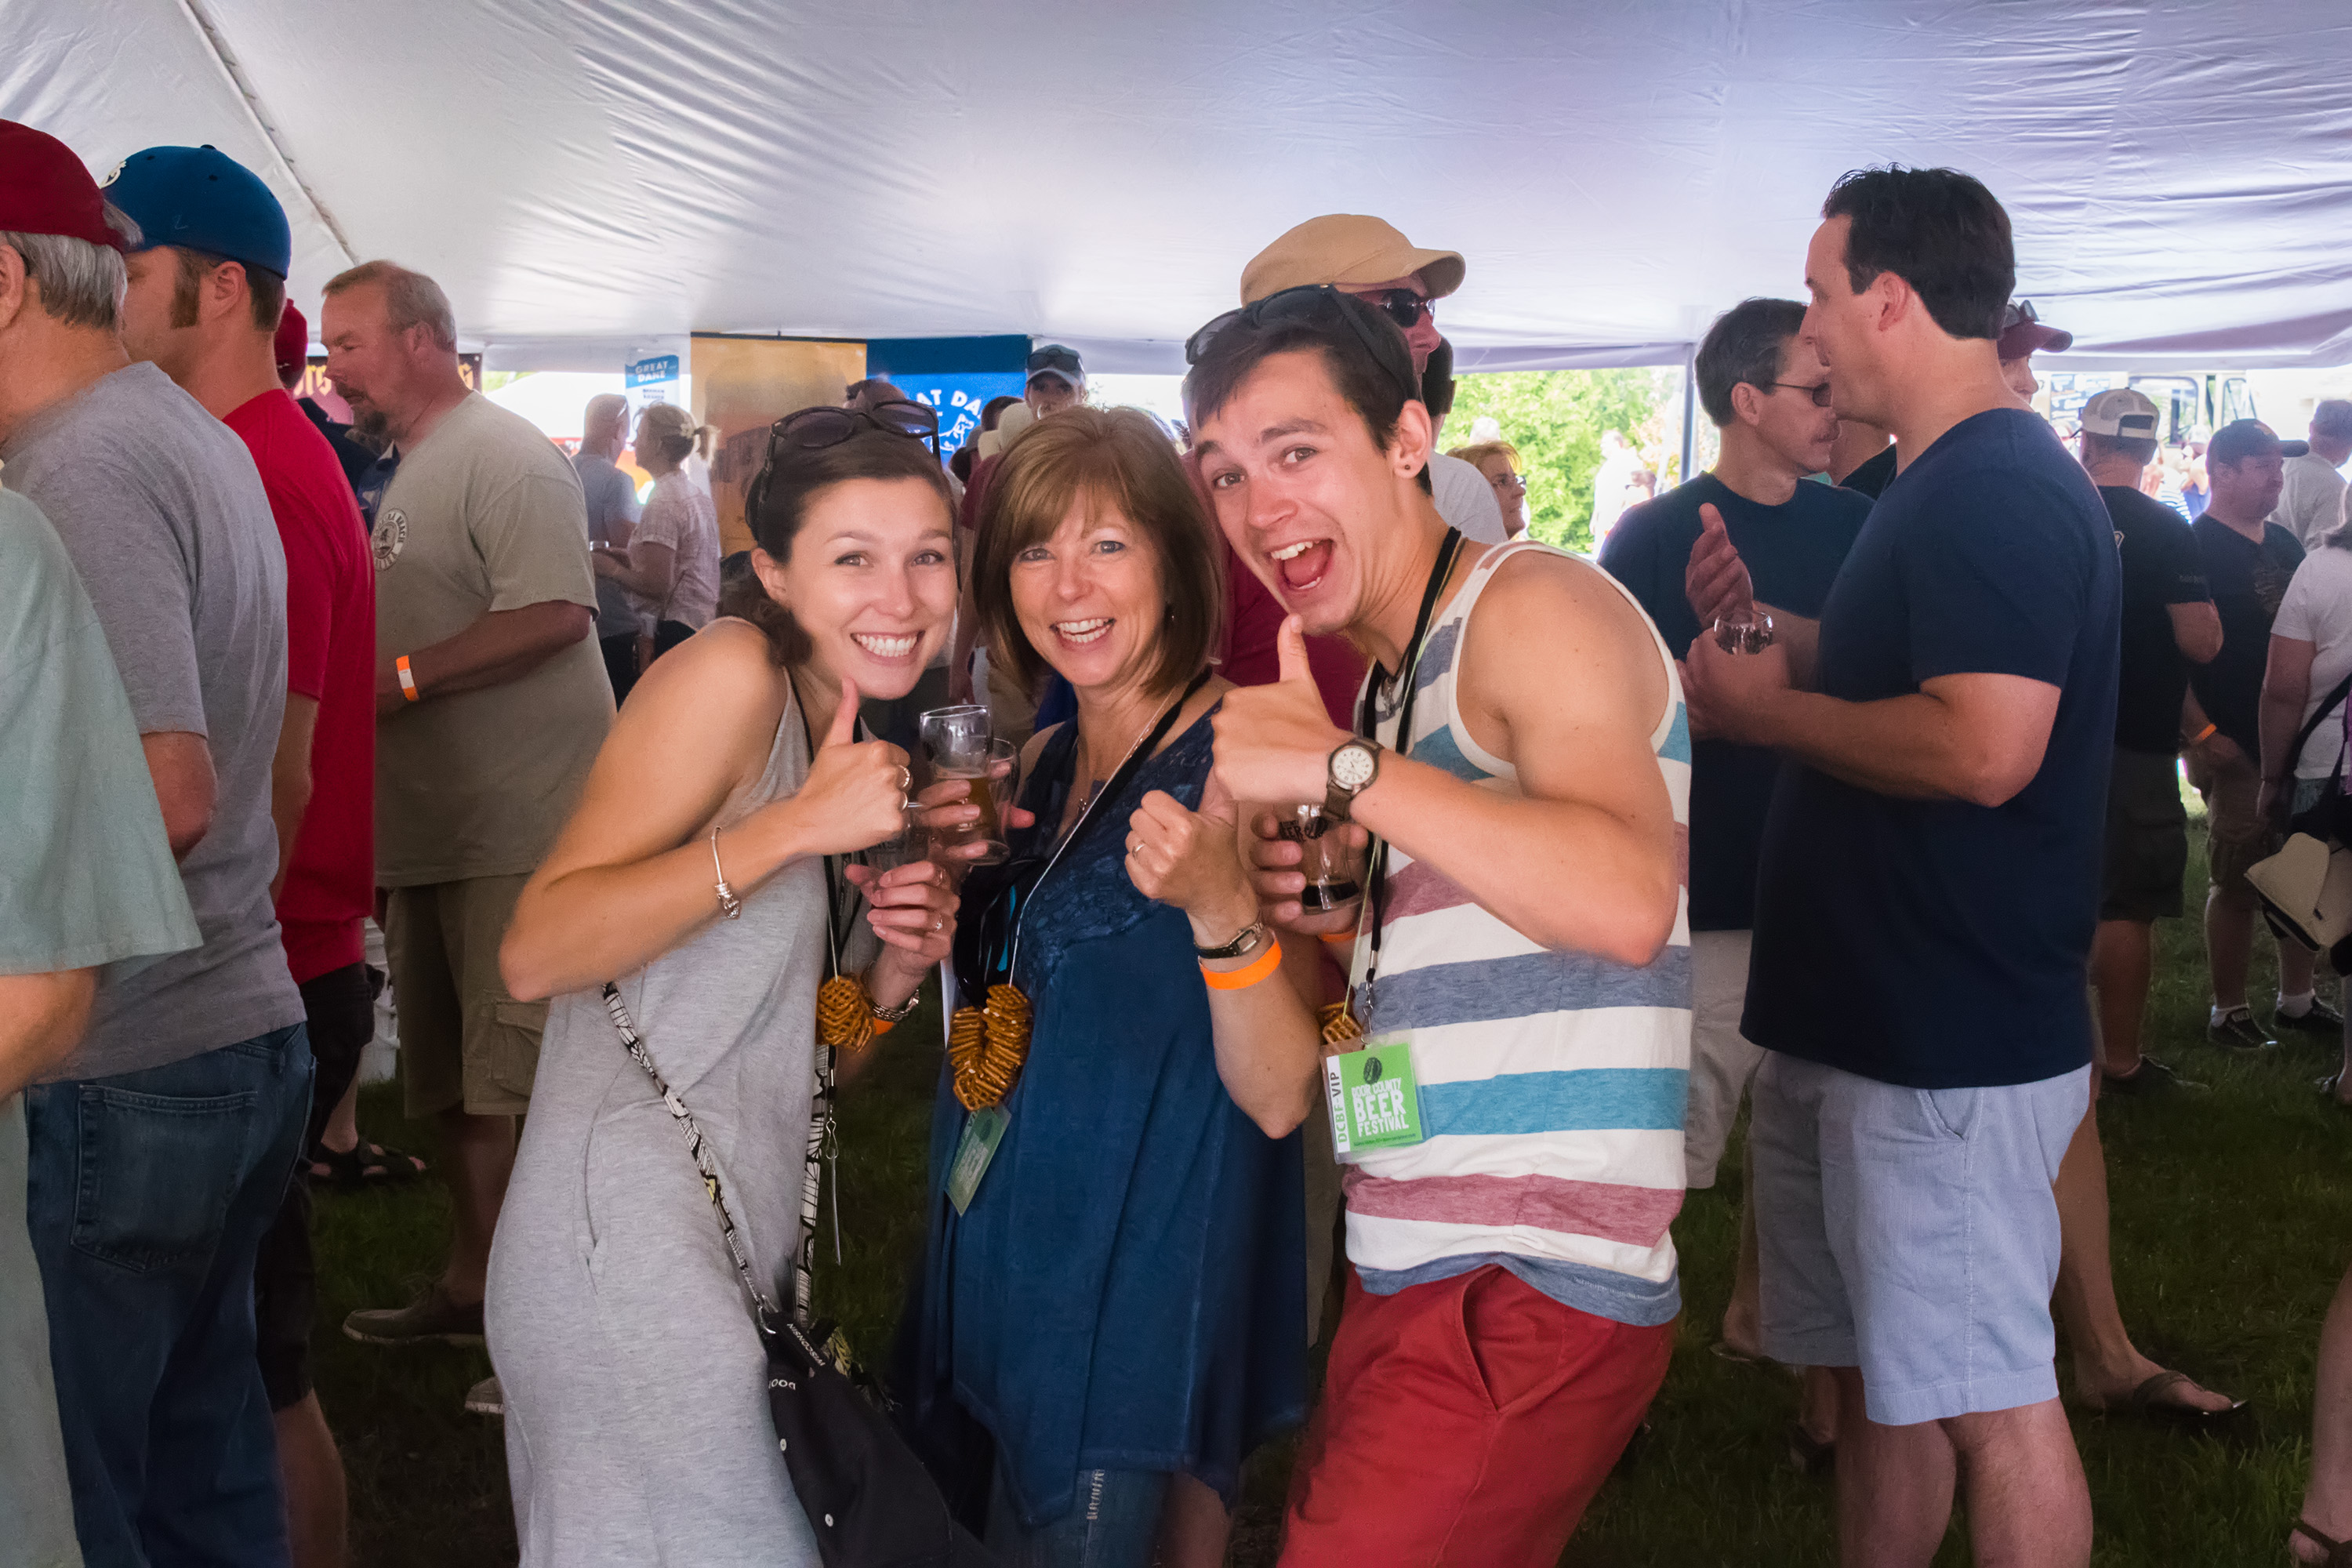 Door County Beer Festival Photo